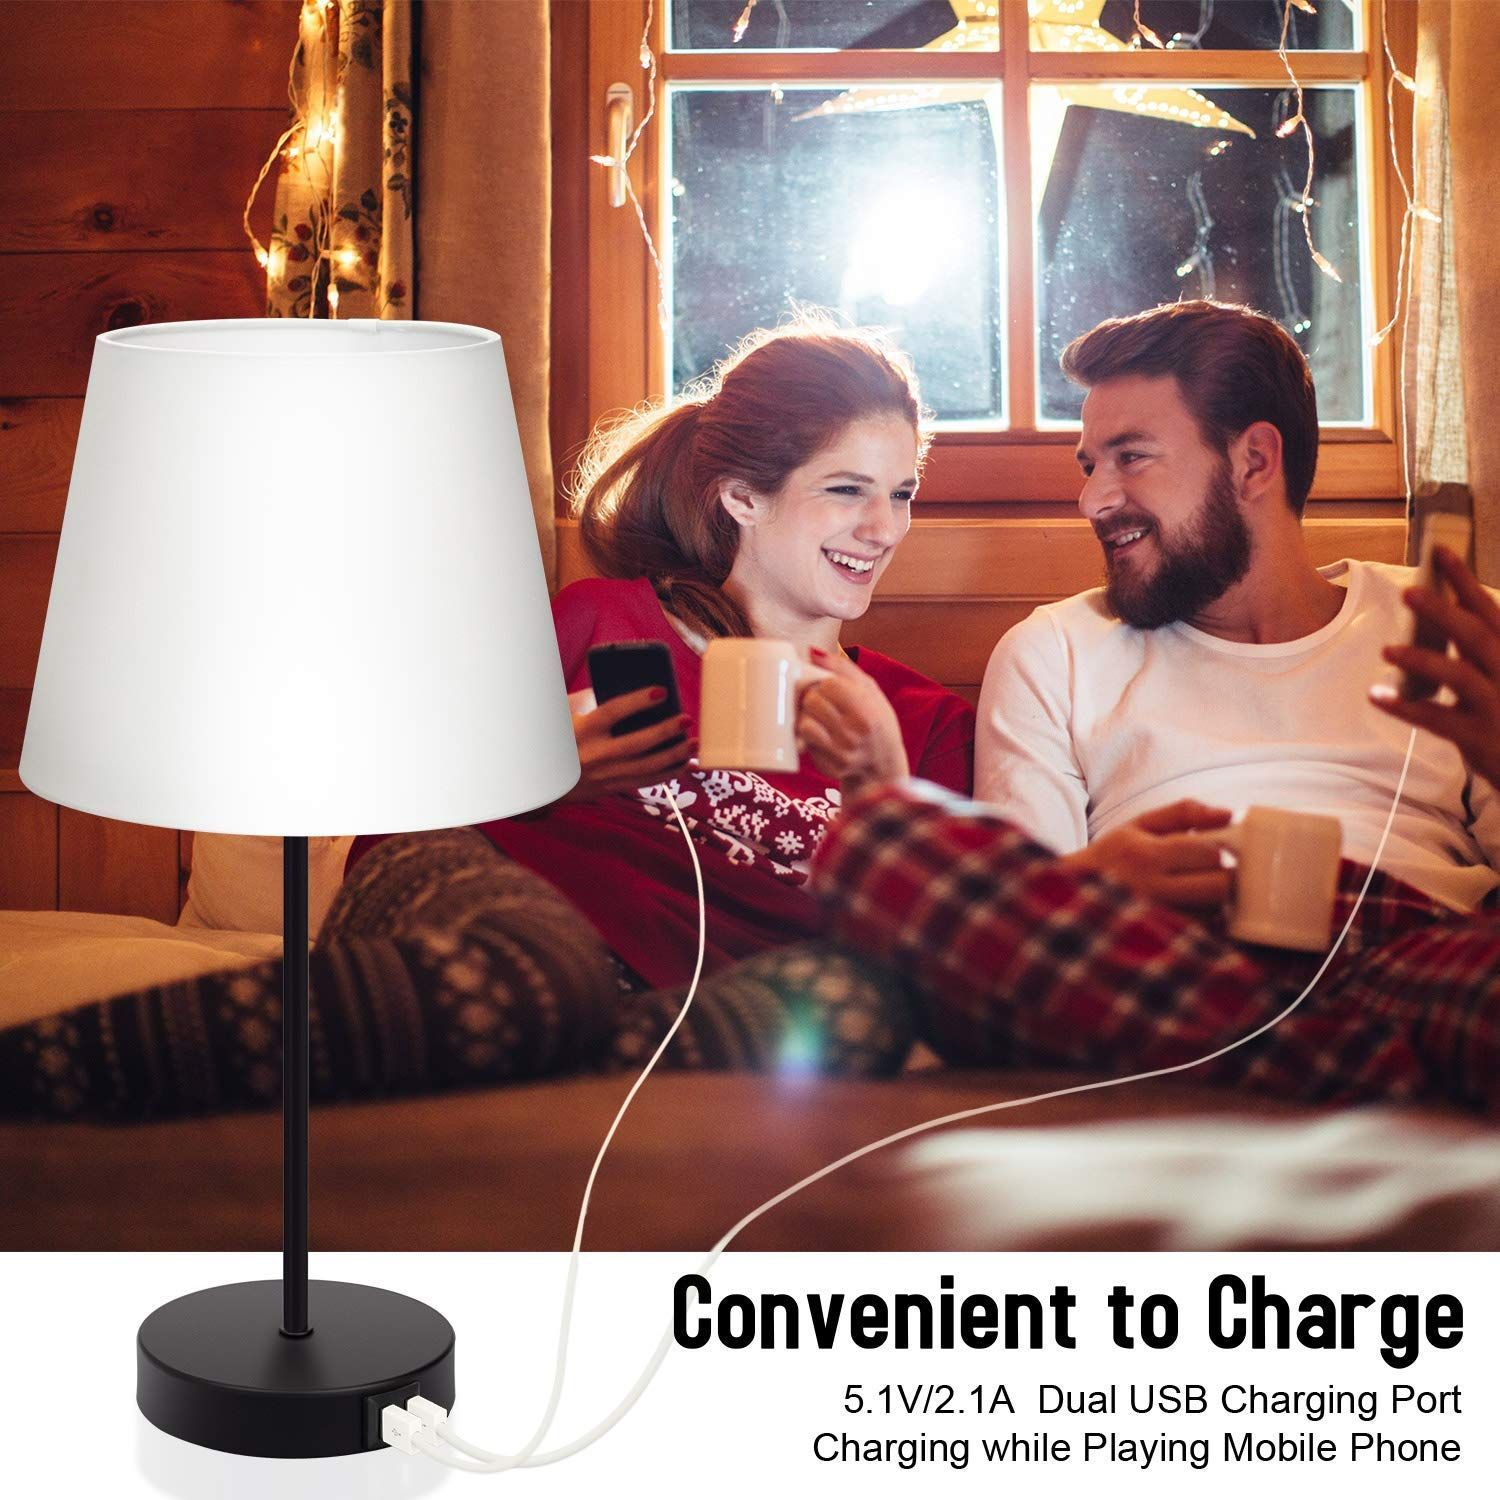 Touch Control Table Lighting 2 Usb Charging Ports 3 Way Dimmable Bedside Nightstand Lamp In 2020 Light Table Lamp Bedside Night Stands